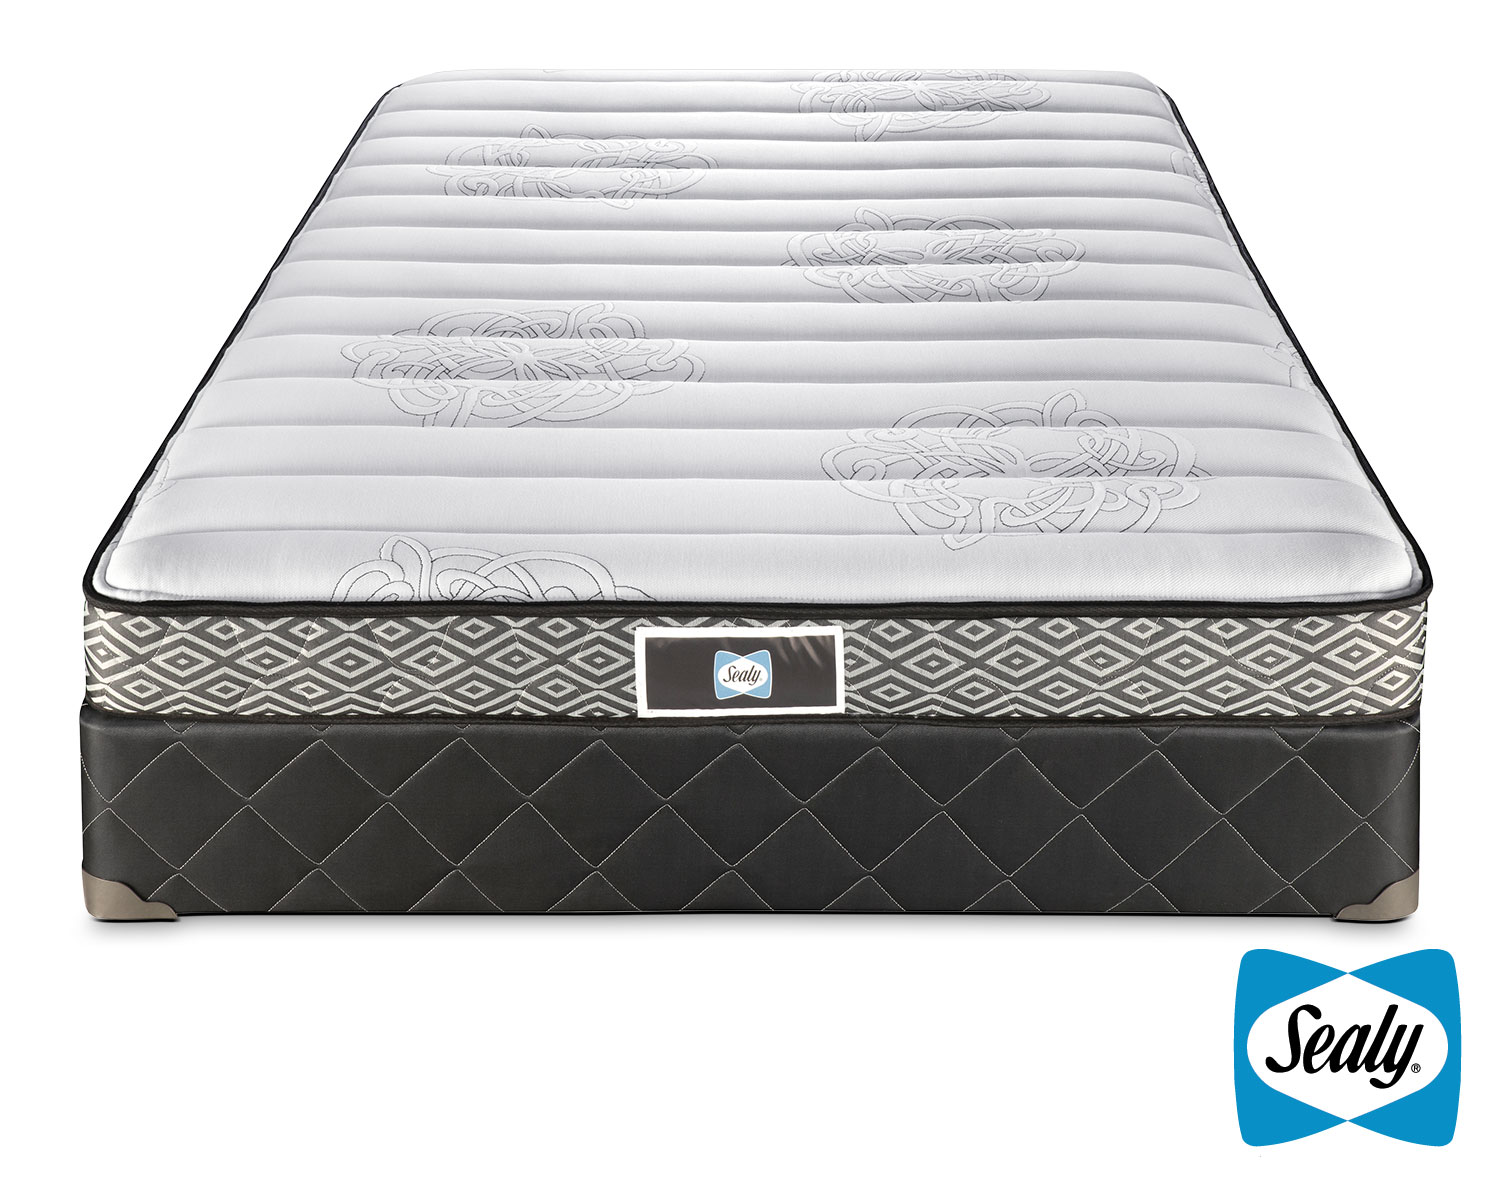 The Sealy Glacier Mattress Collection